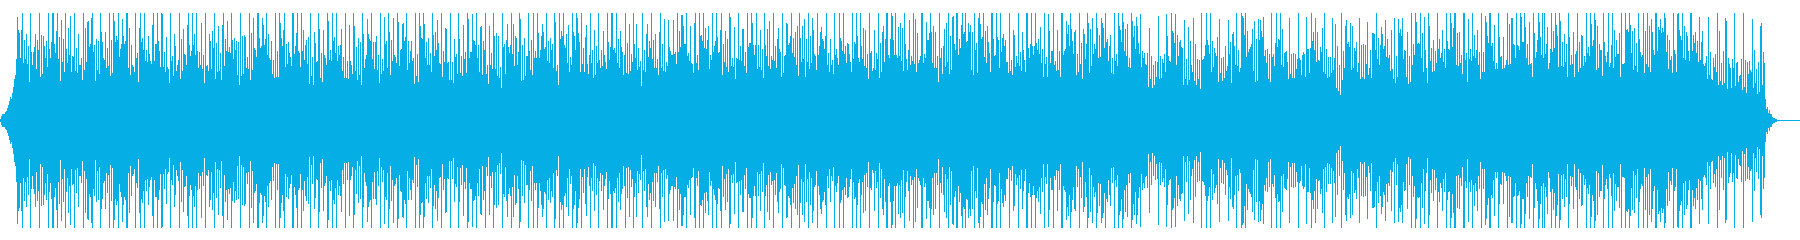 Tech Corporate Uplifting bpm= 115's reproduced waveform